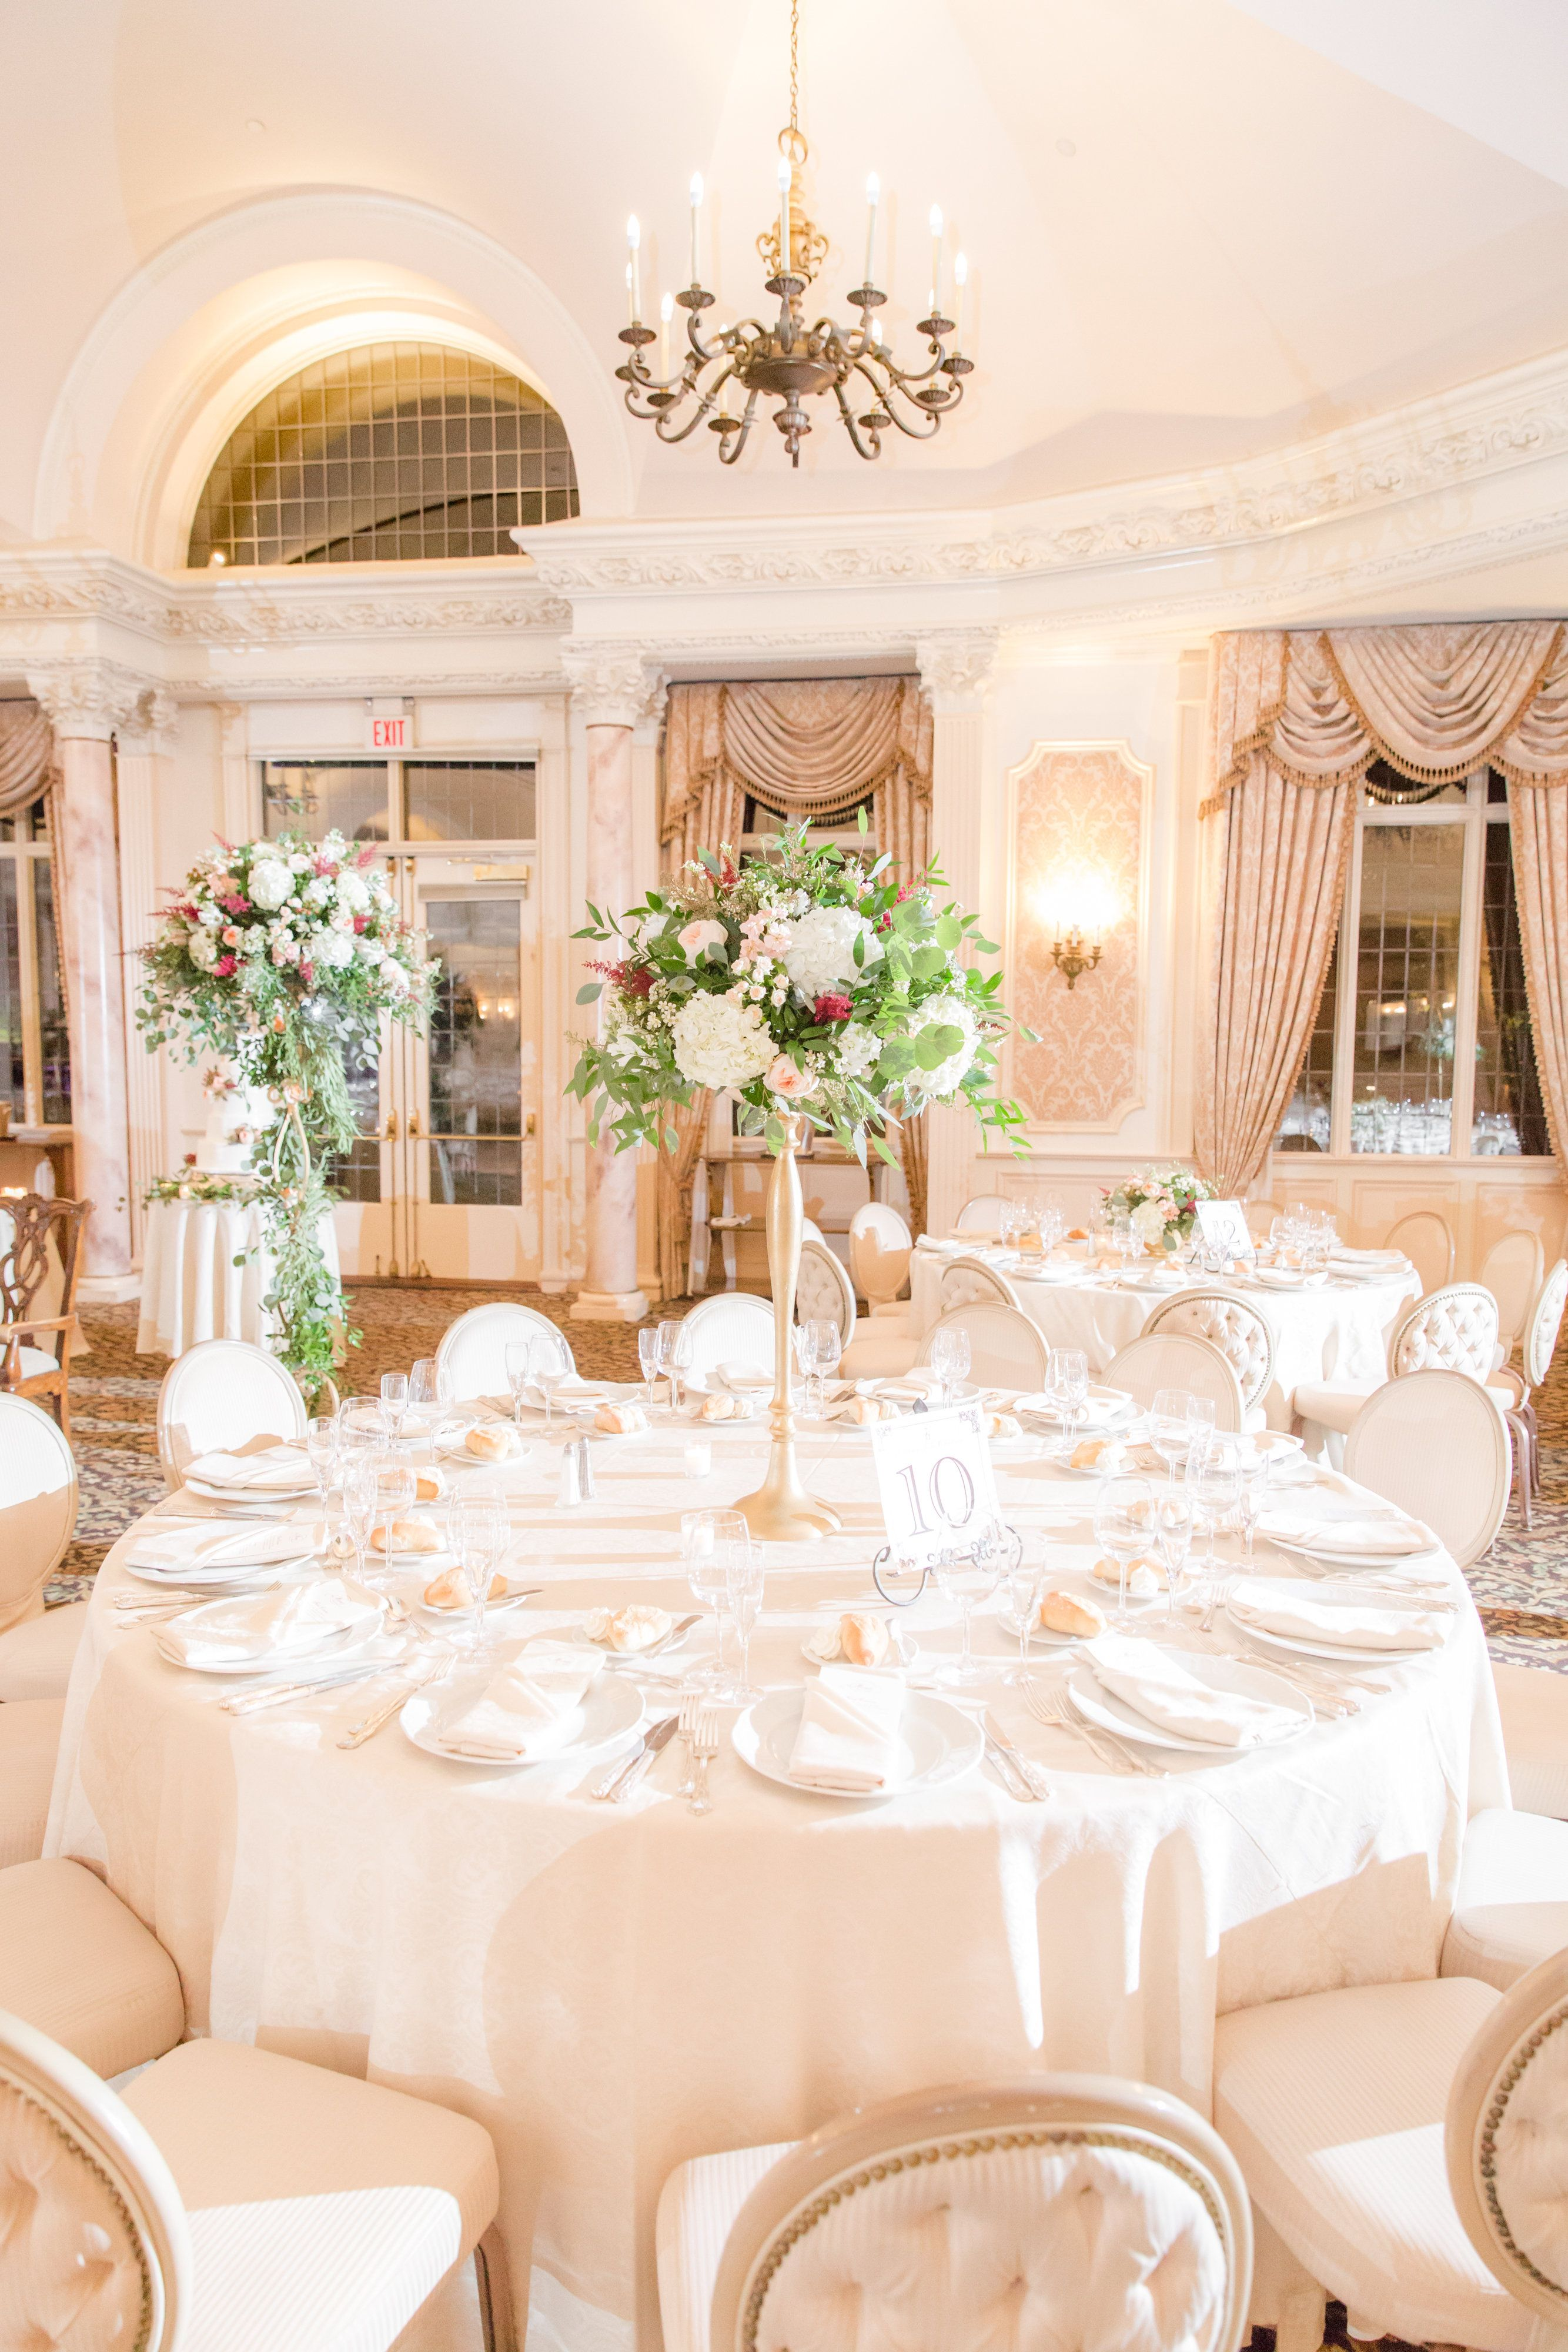 Pleasantdale Chateau Wedding Photos Kate And John Chateau Wedding Nj Wedding Venues Ny Wedding Venues